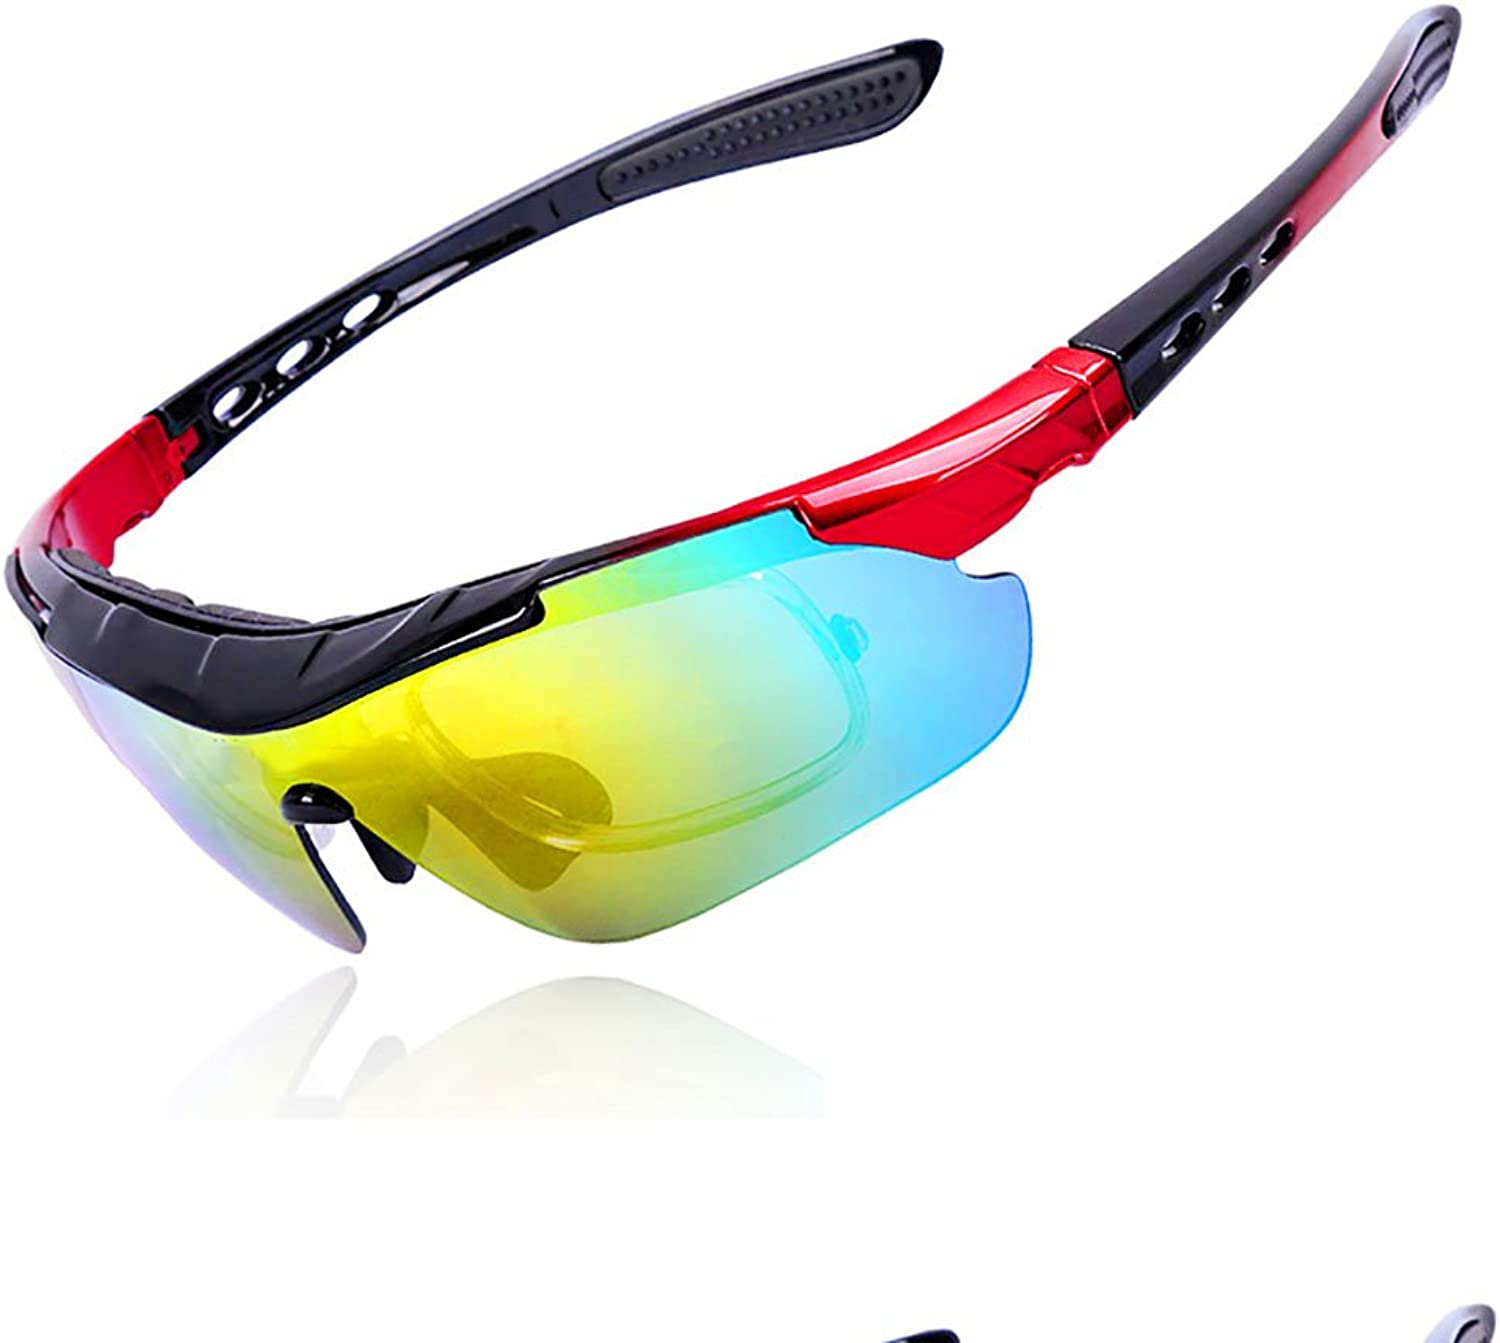 Cycling Glasses Mountain Bike Sunglasses Polarized Outdoor Sports Windshield Light and Comfortable UV Predectionwith Myopia Frame